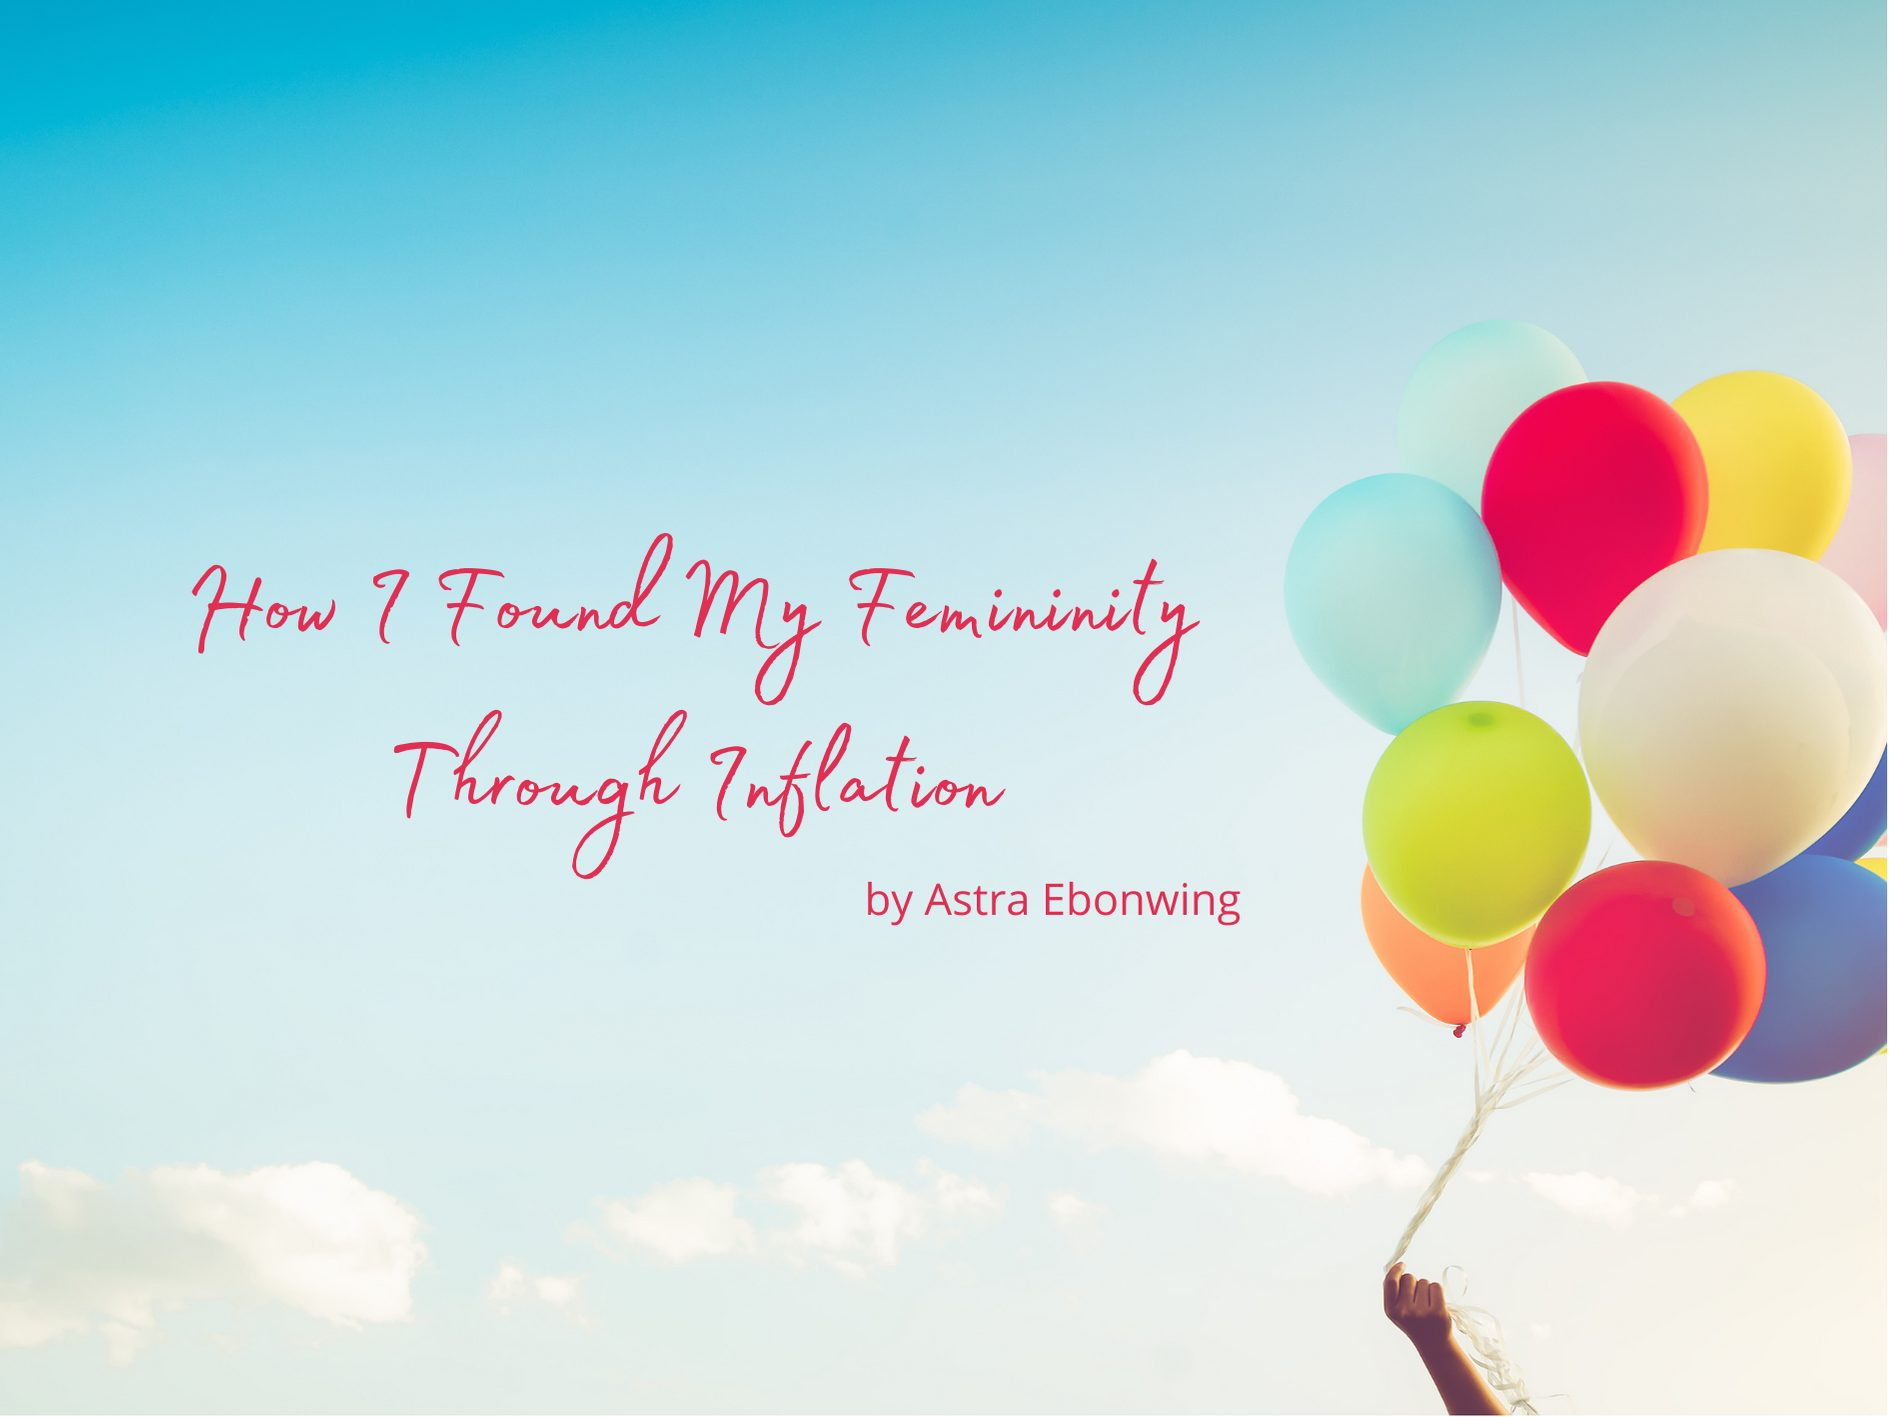 [Guest Post] How I Found My Femininity Through Inflation by Astra Ebonwing